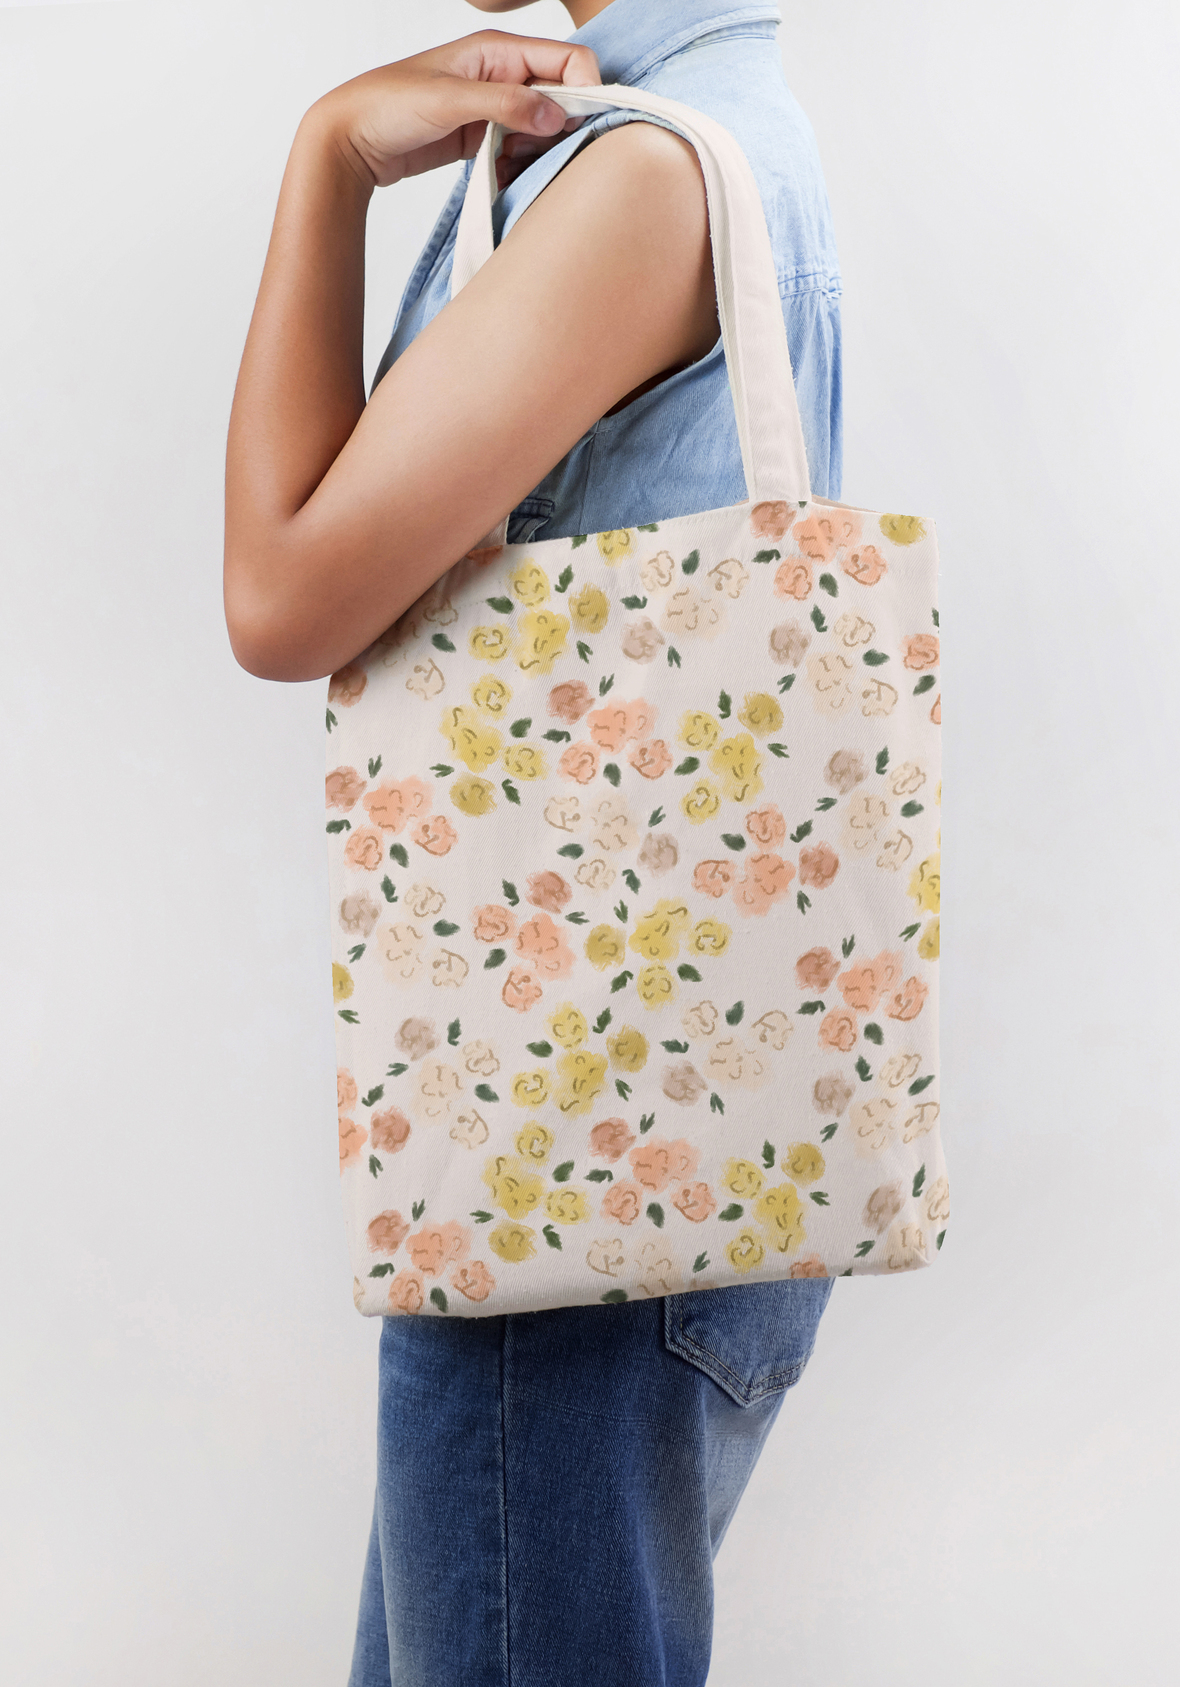 Woman with Tote 1